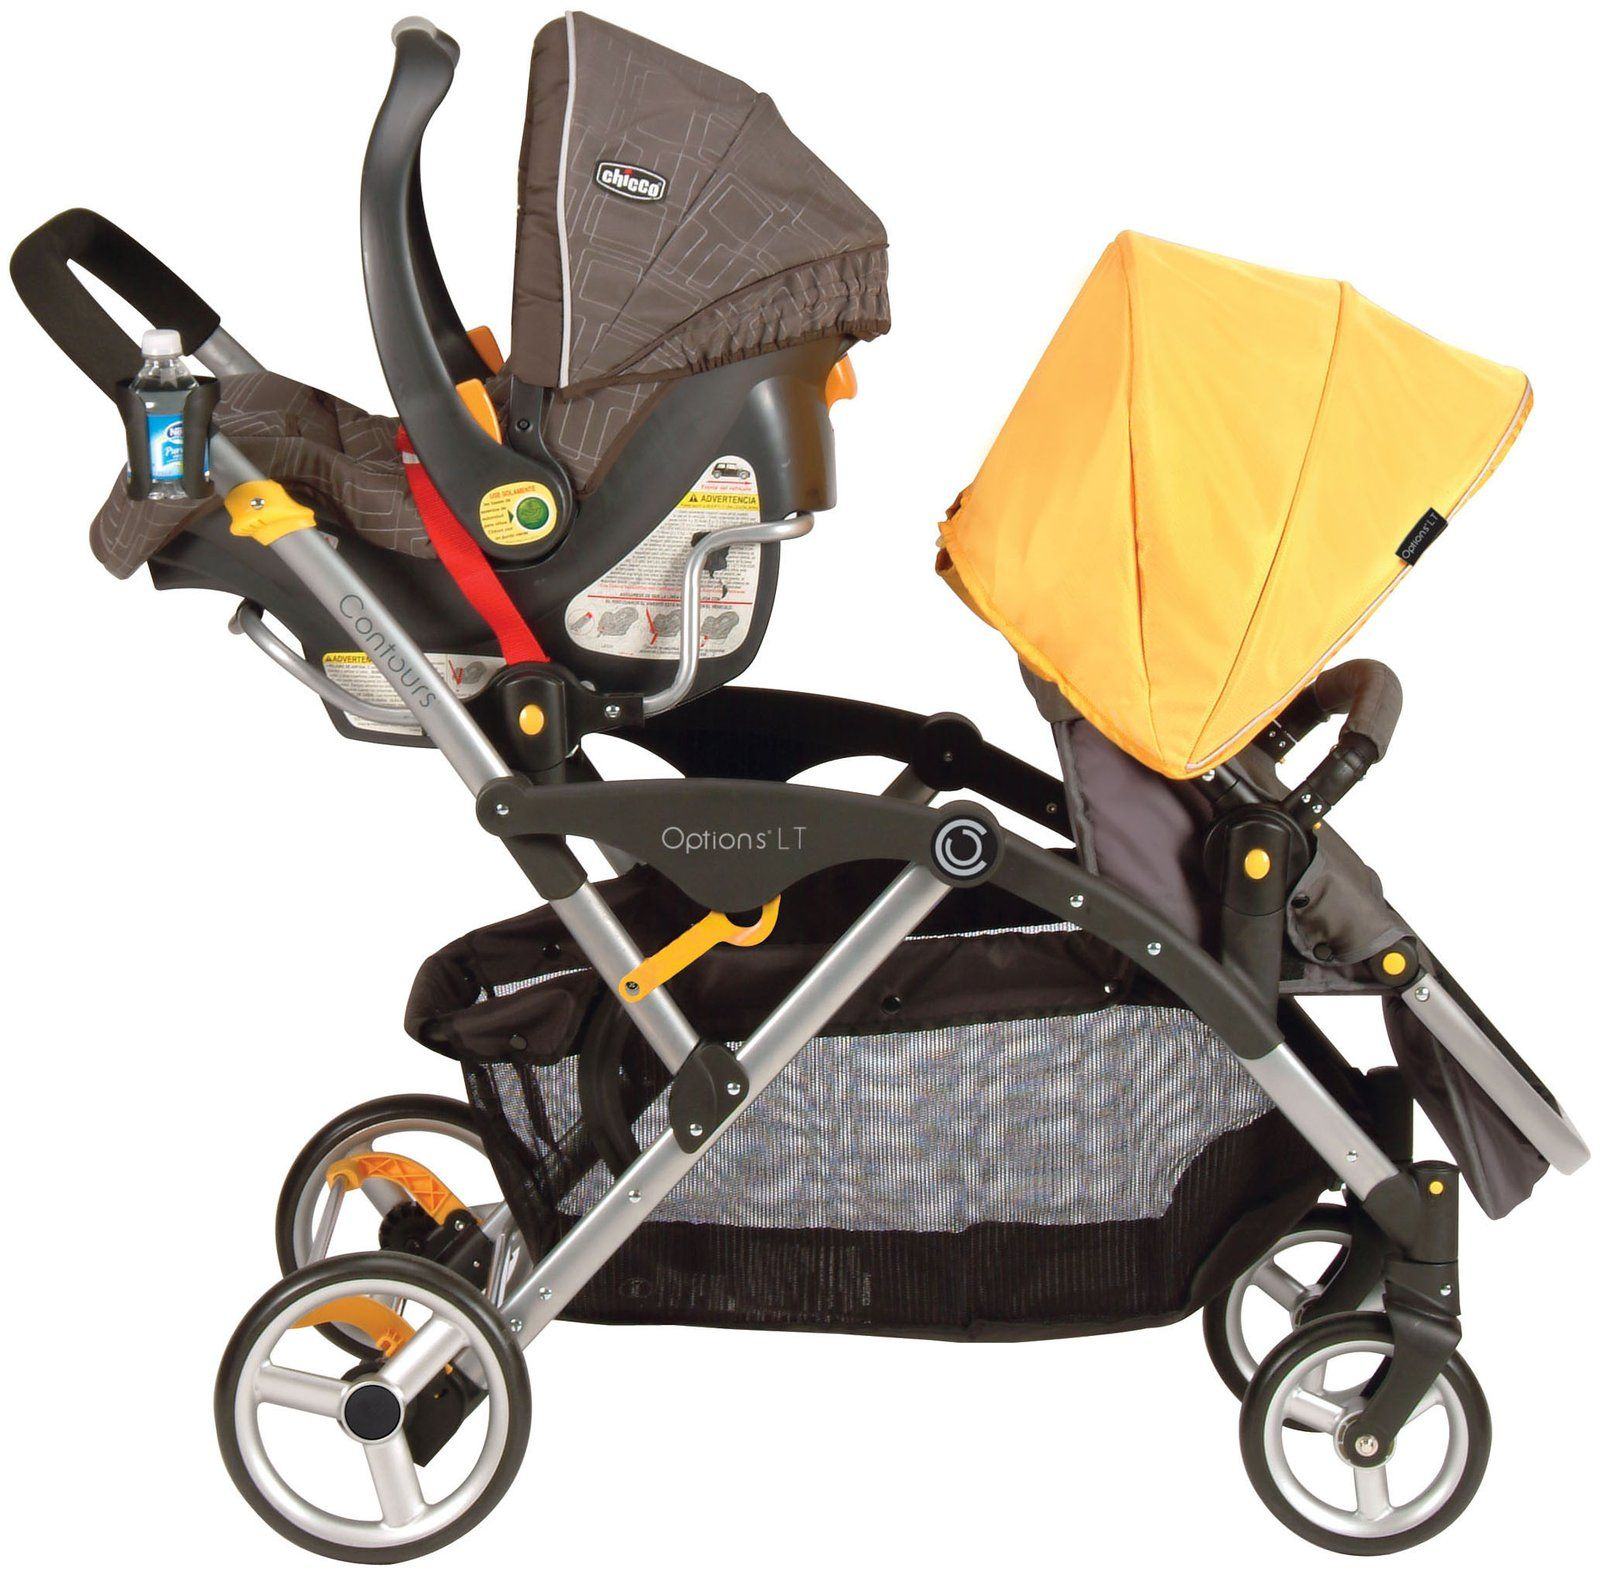 Contours Options LT Tandem Stroller 259.00 compared to